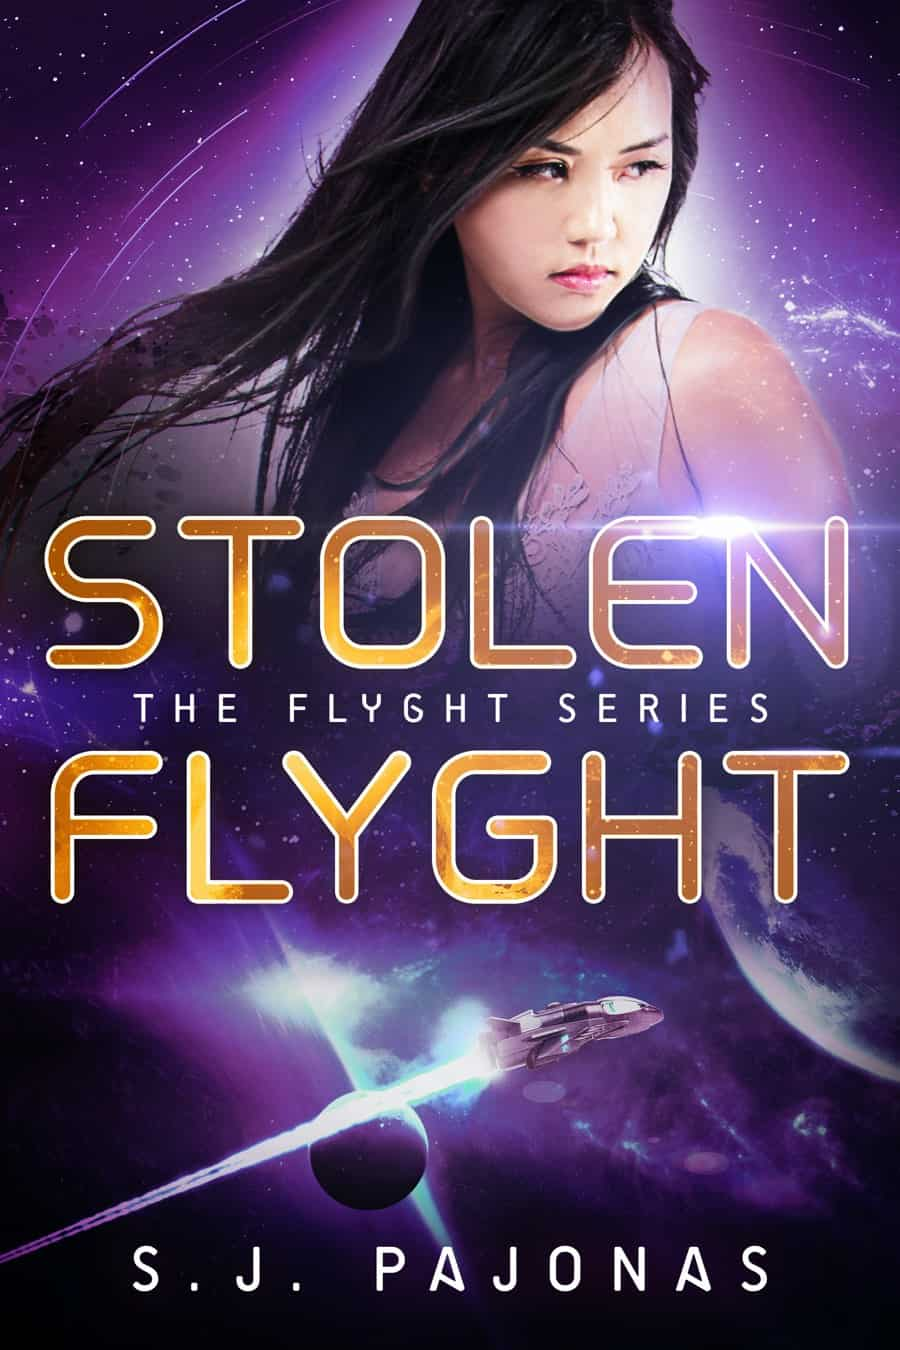 Pre-order STOLEN FLYGHT, Book 6 of the Flyght Series, today and continue your journey with Vivian and the crew of the Amagi!